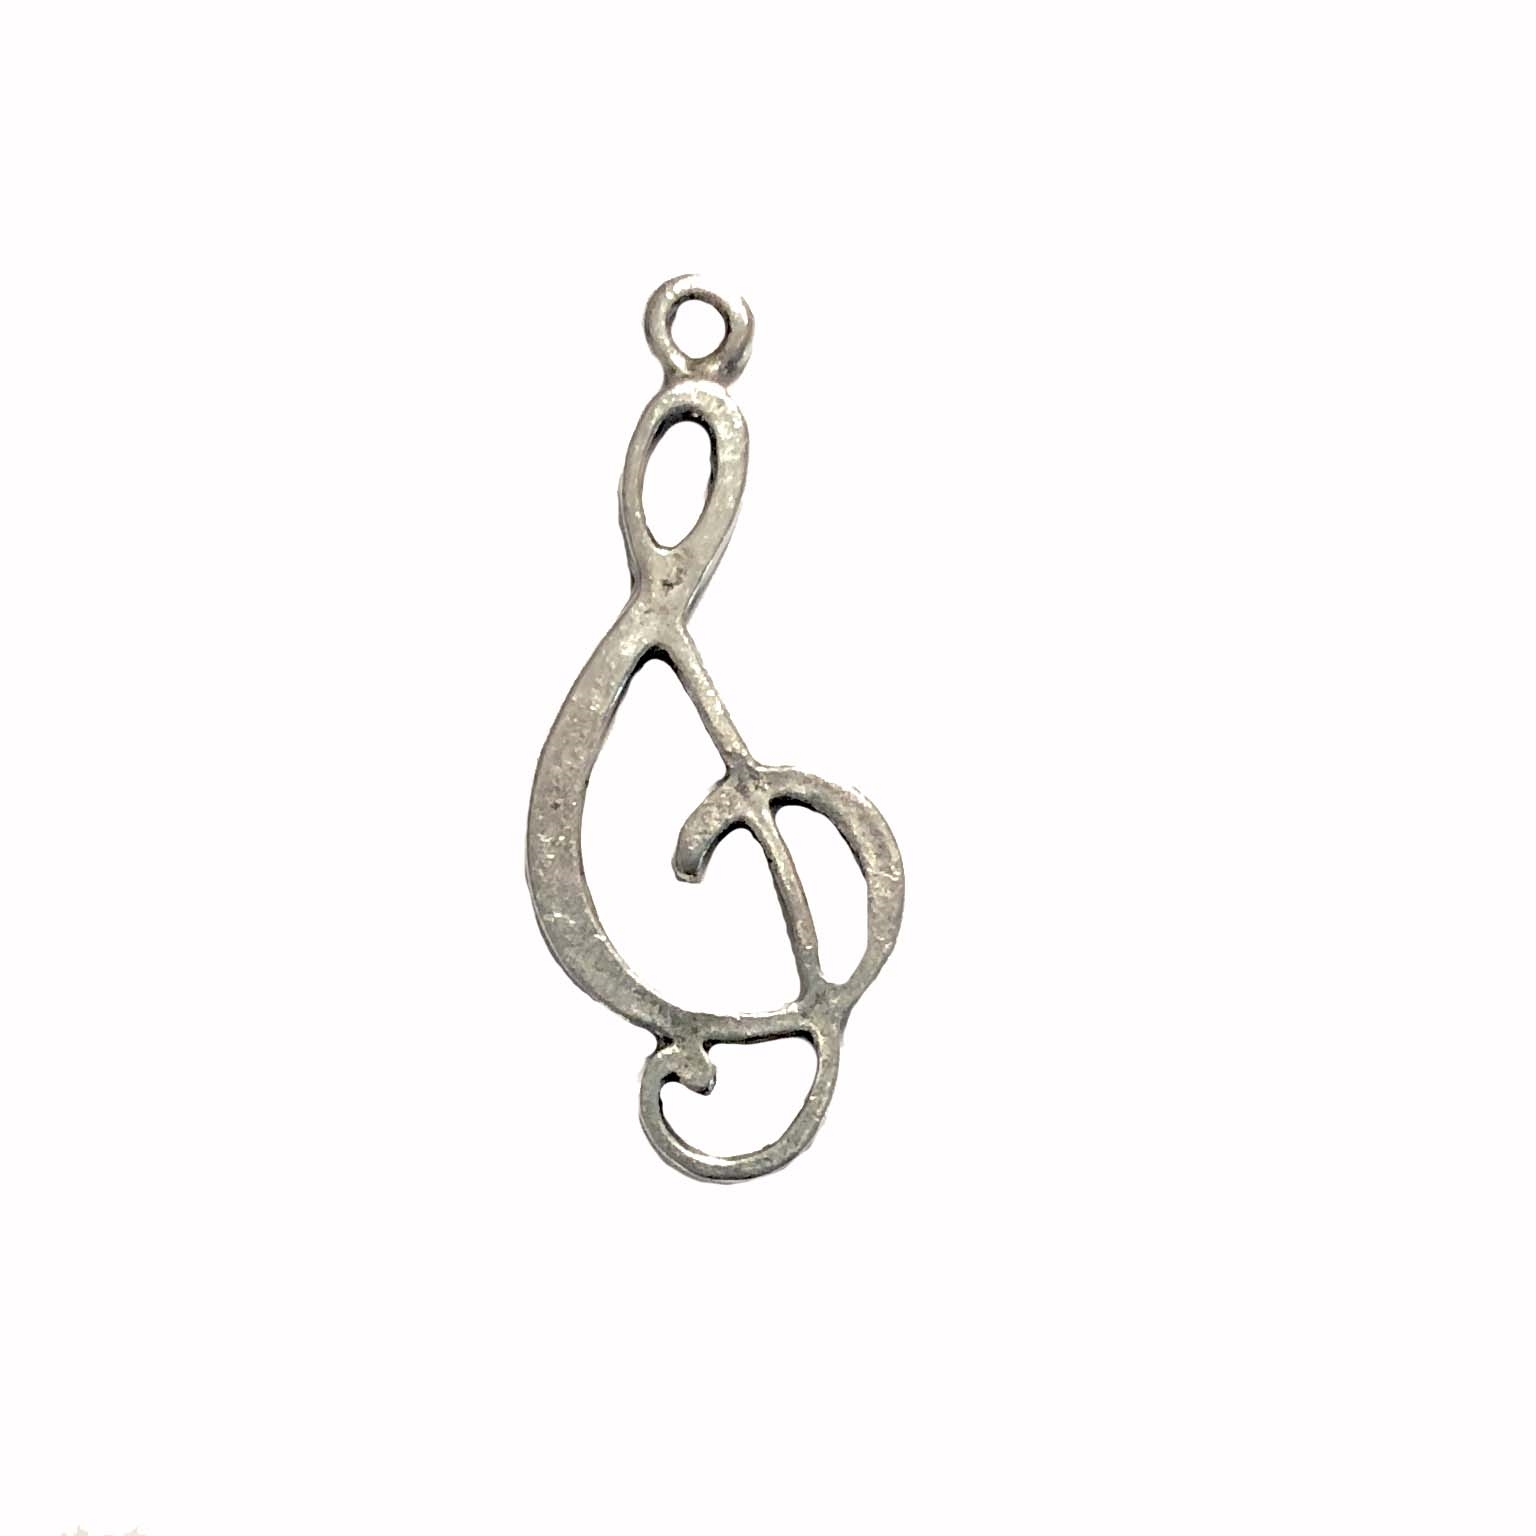 old silver, treble clef, music charms, pewter charms, 09733, lead free pewter, B'sue by 1928, silver plated pewter, antique, vintage jewelry parts, pewter jewelry parts, nickel free finish, made in the USA, 1928 Company, designer jewelry, B'sue Boutiques